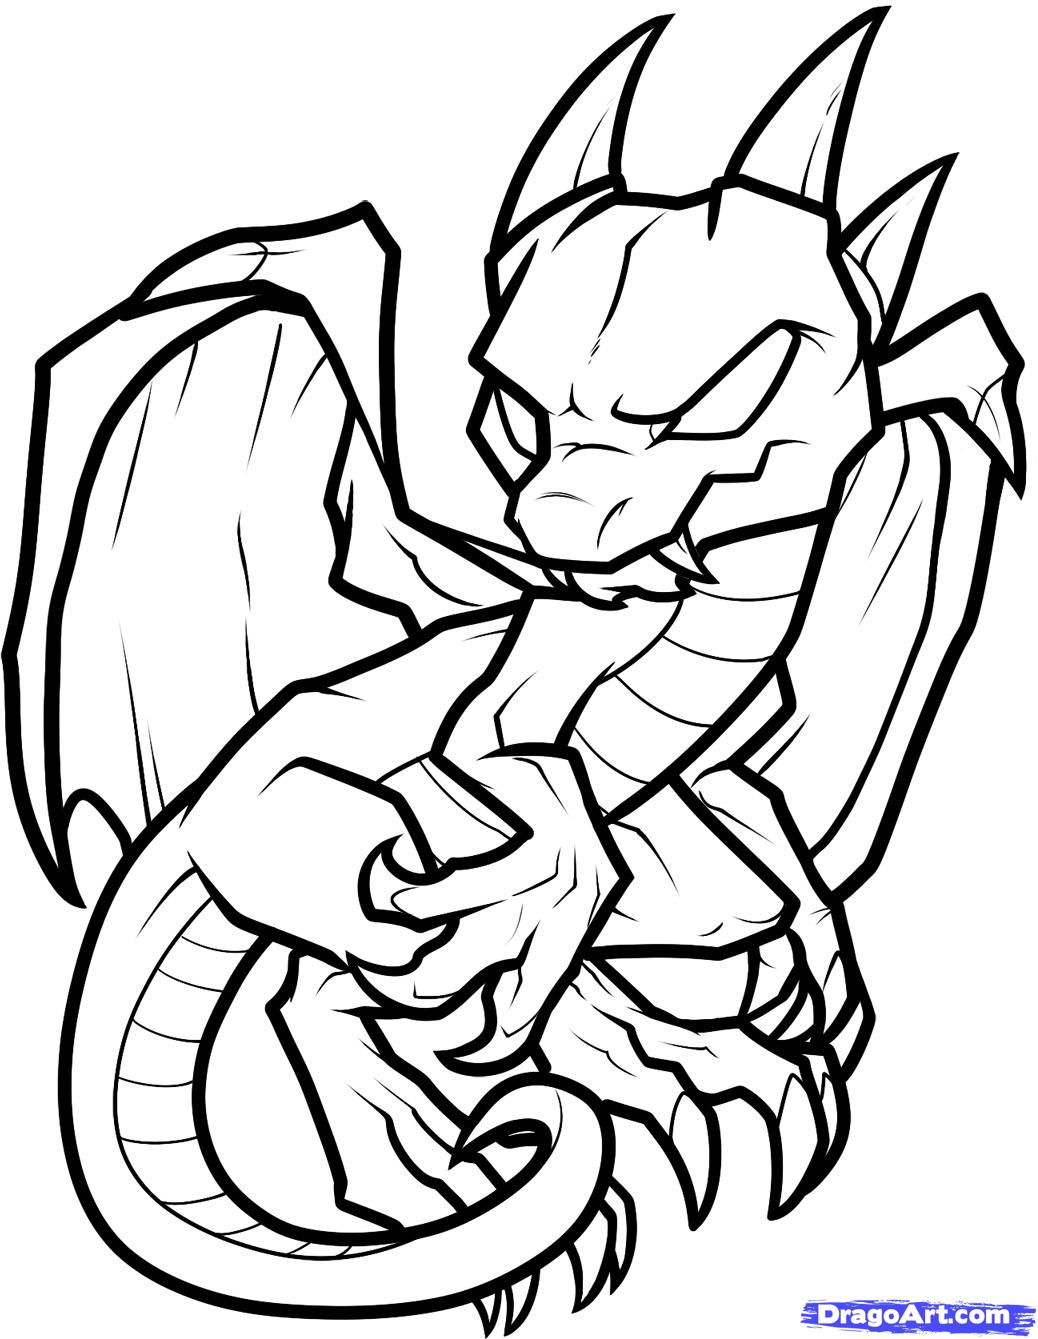 1038x1339 Coloring Pages Engaging Draw A Simple Dragon